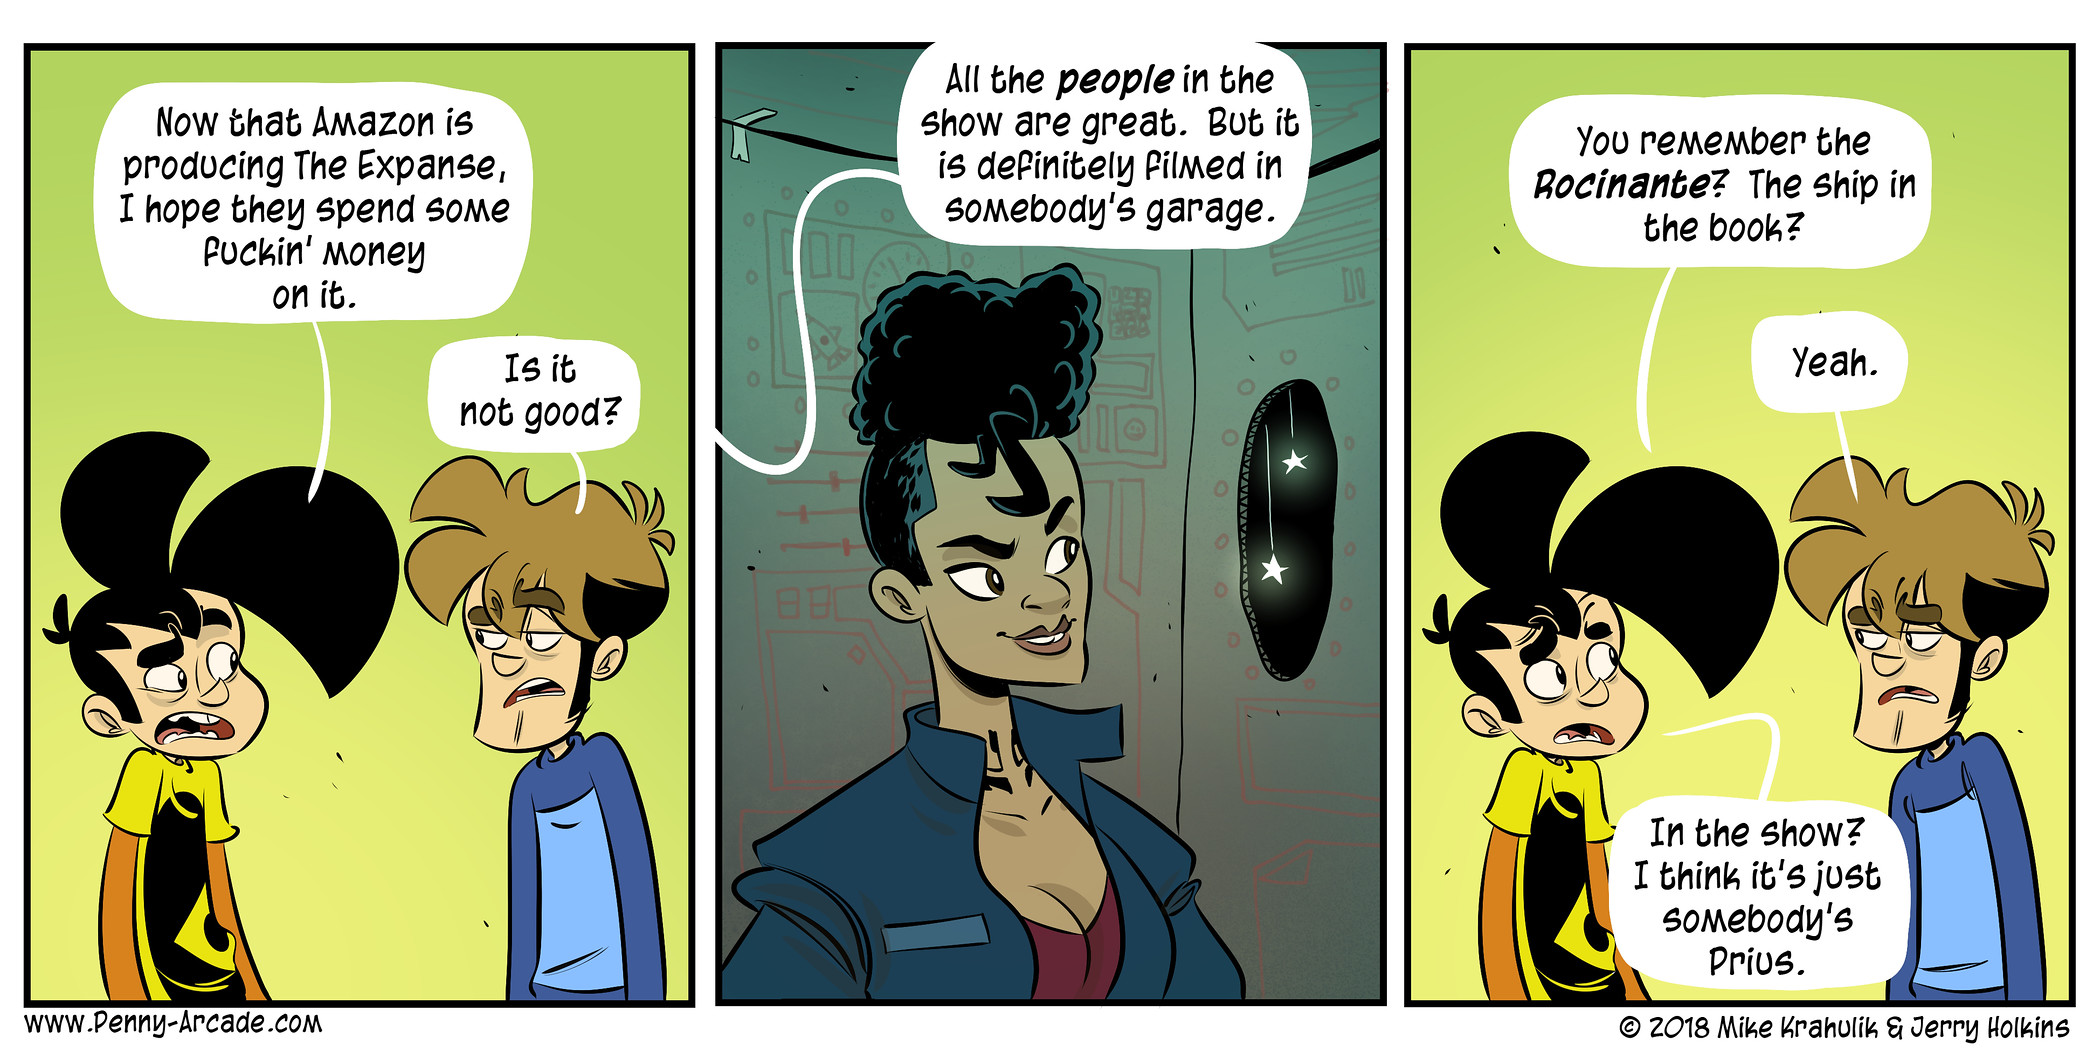 Expansion penny arcade know your meme now that amazon is producing the expanse i hope they spend some puckin money m4hsunfo